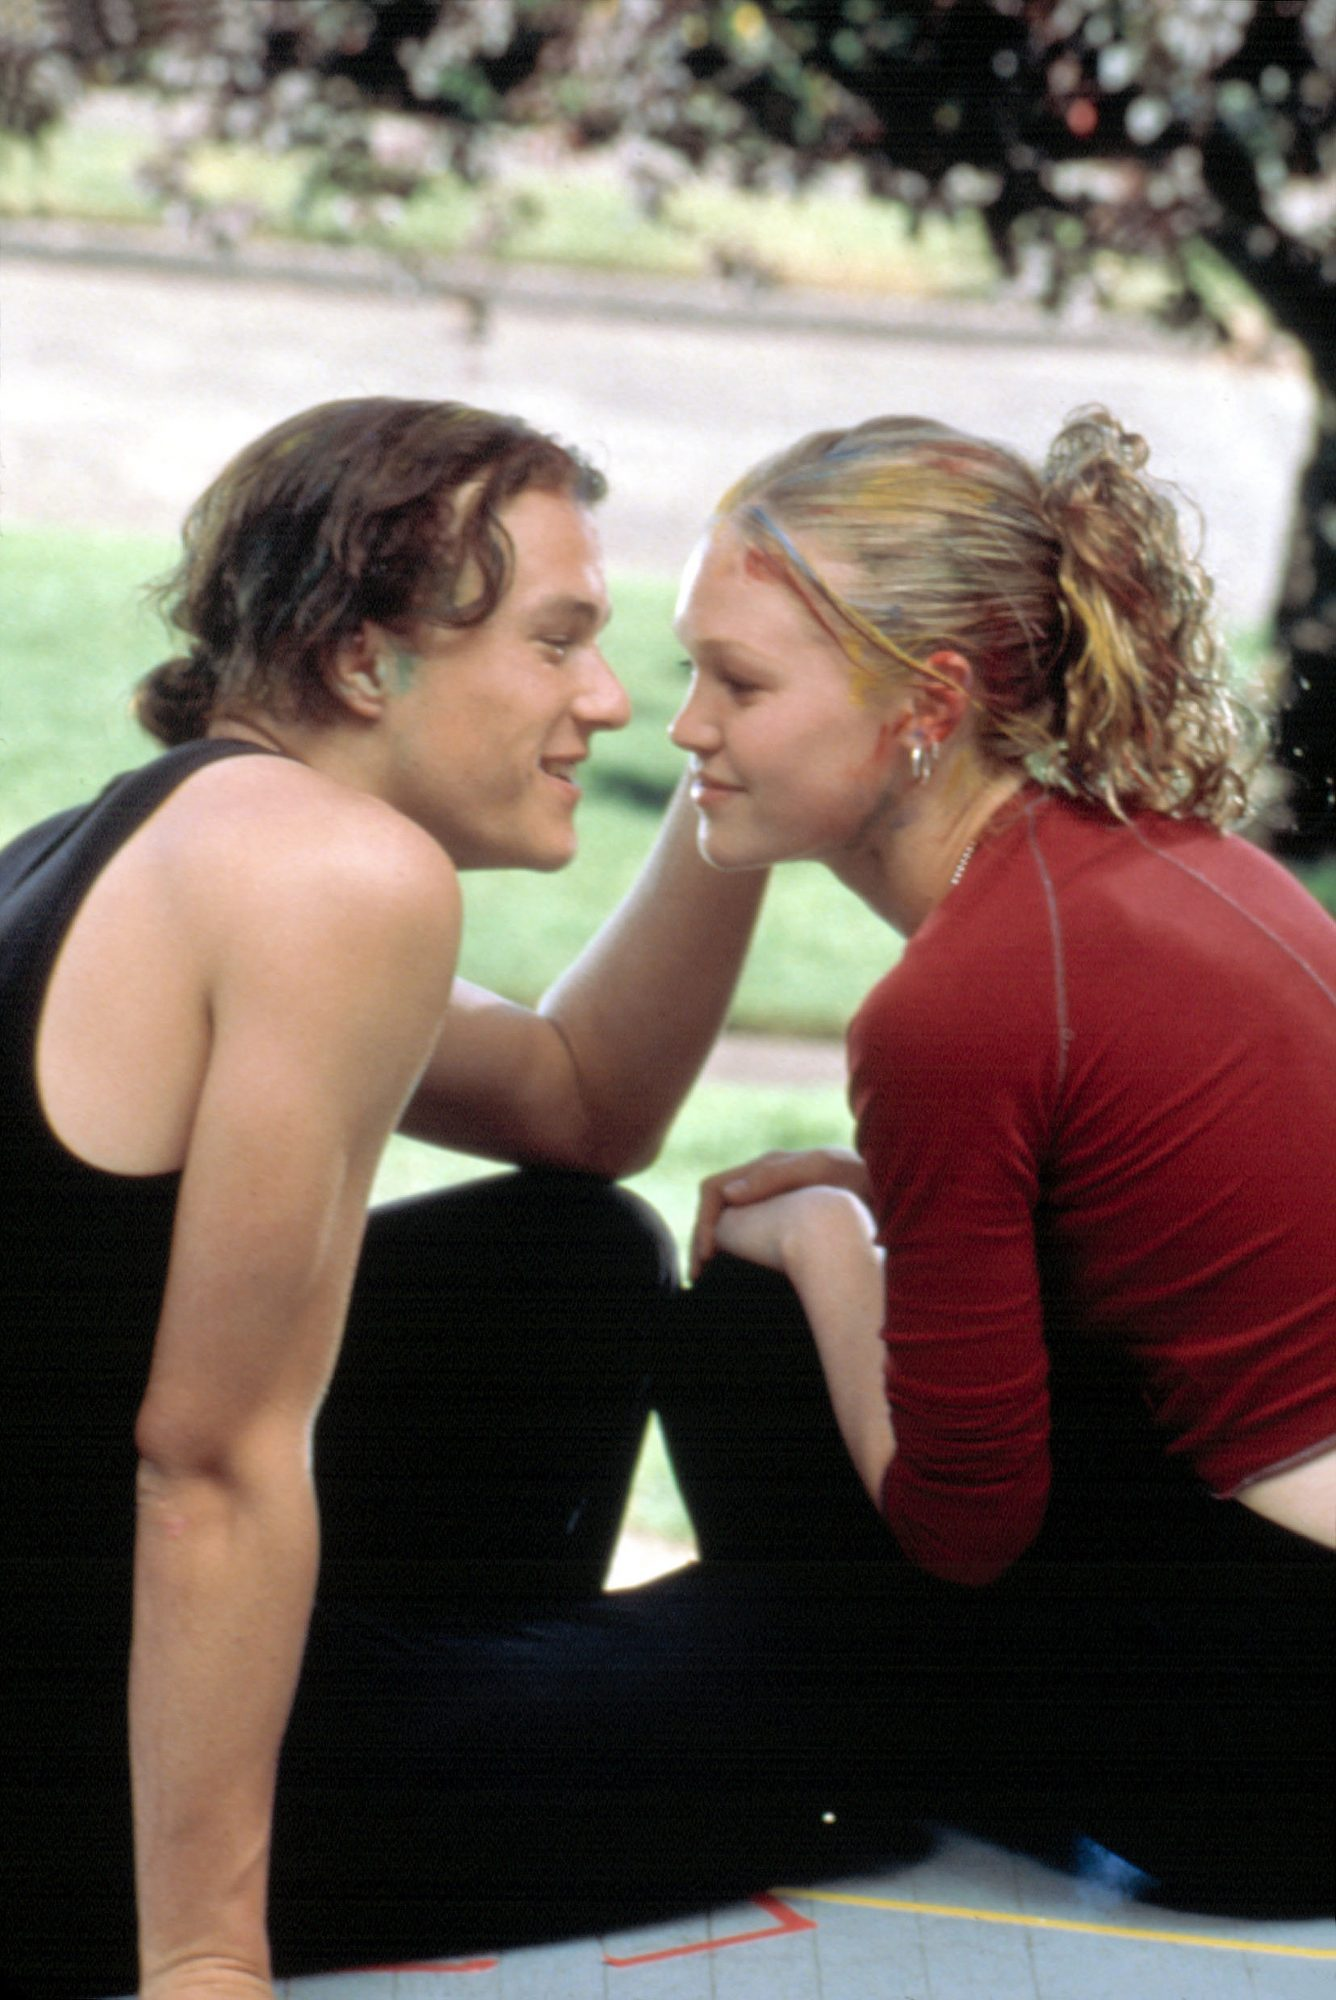 10 THINGS I HATE ABOUT YOU, Heath Ledger, Julia Stiles, 1999